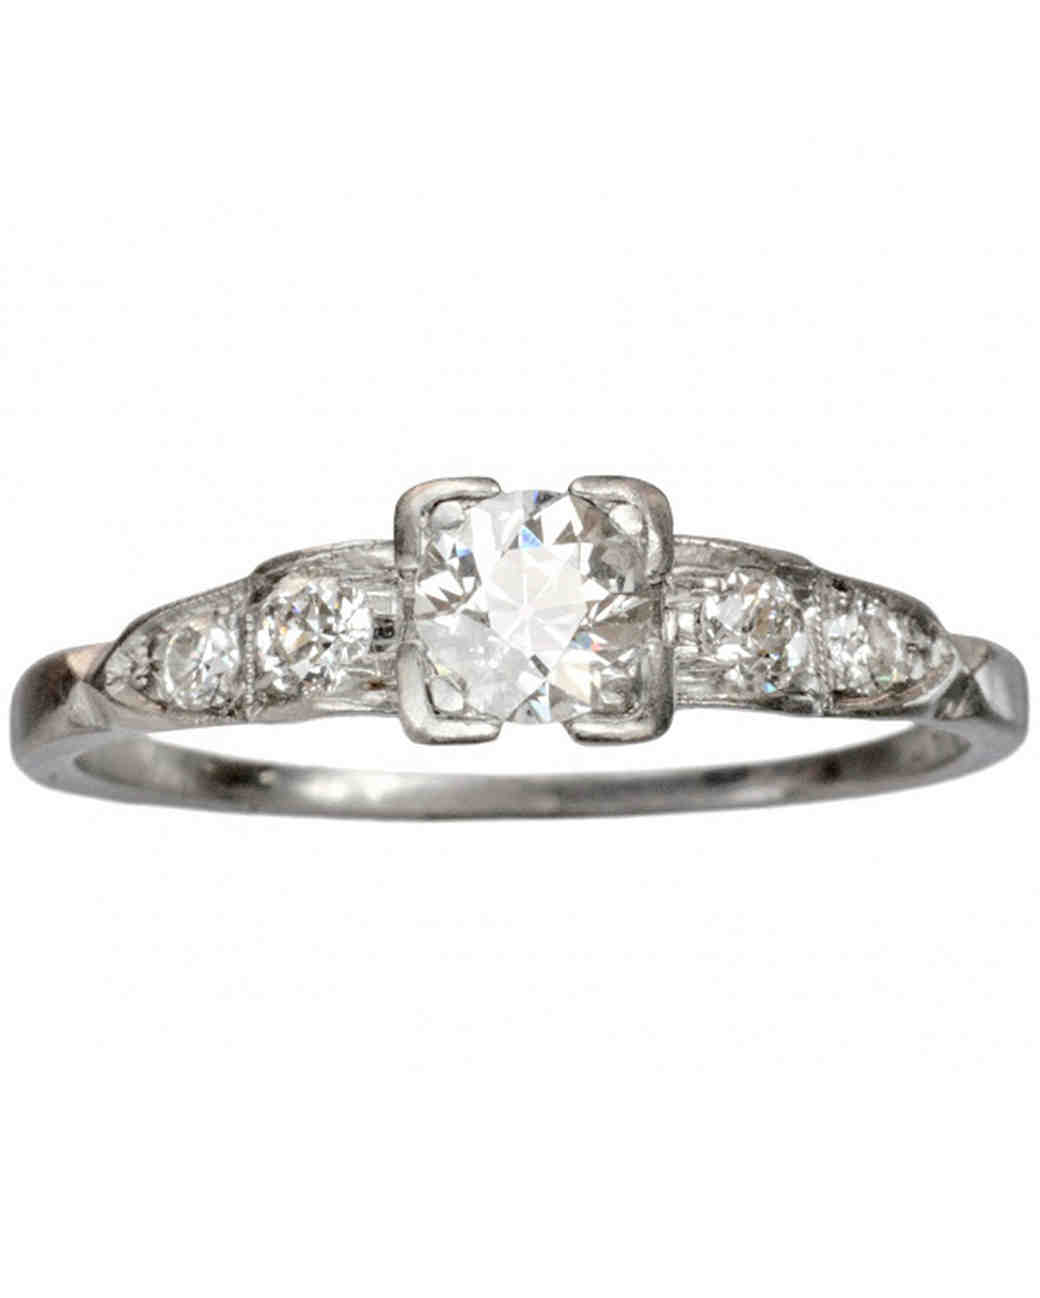 Erie Basin 1930s antique engagement ring